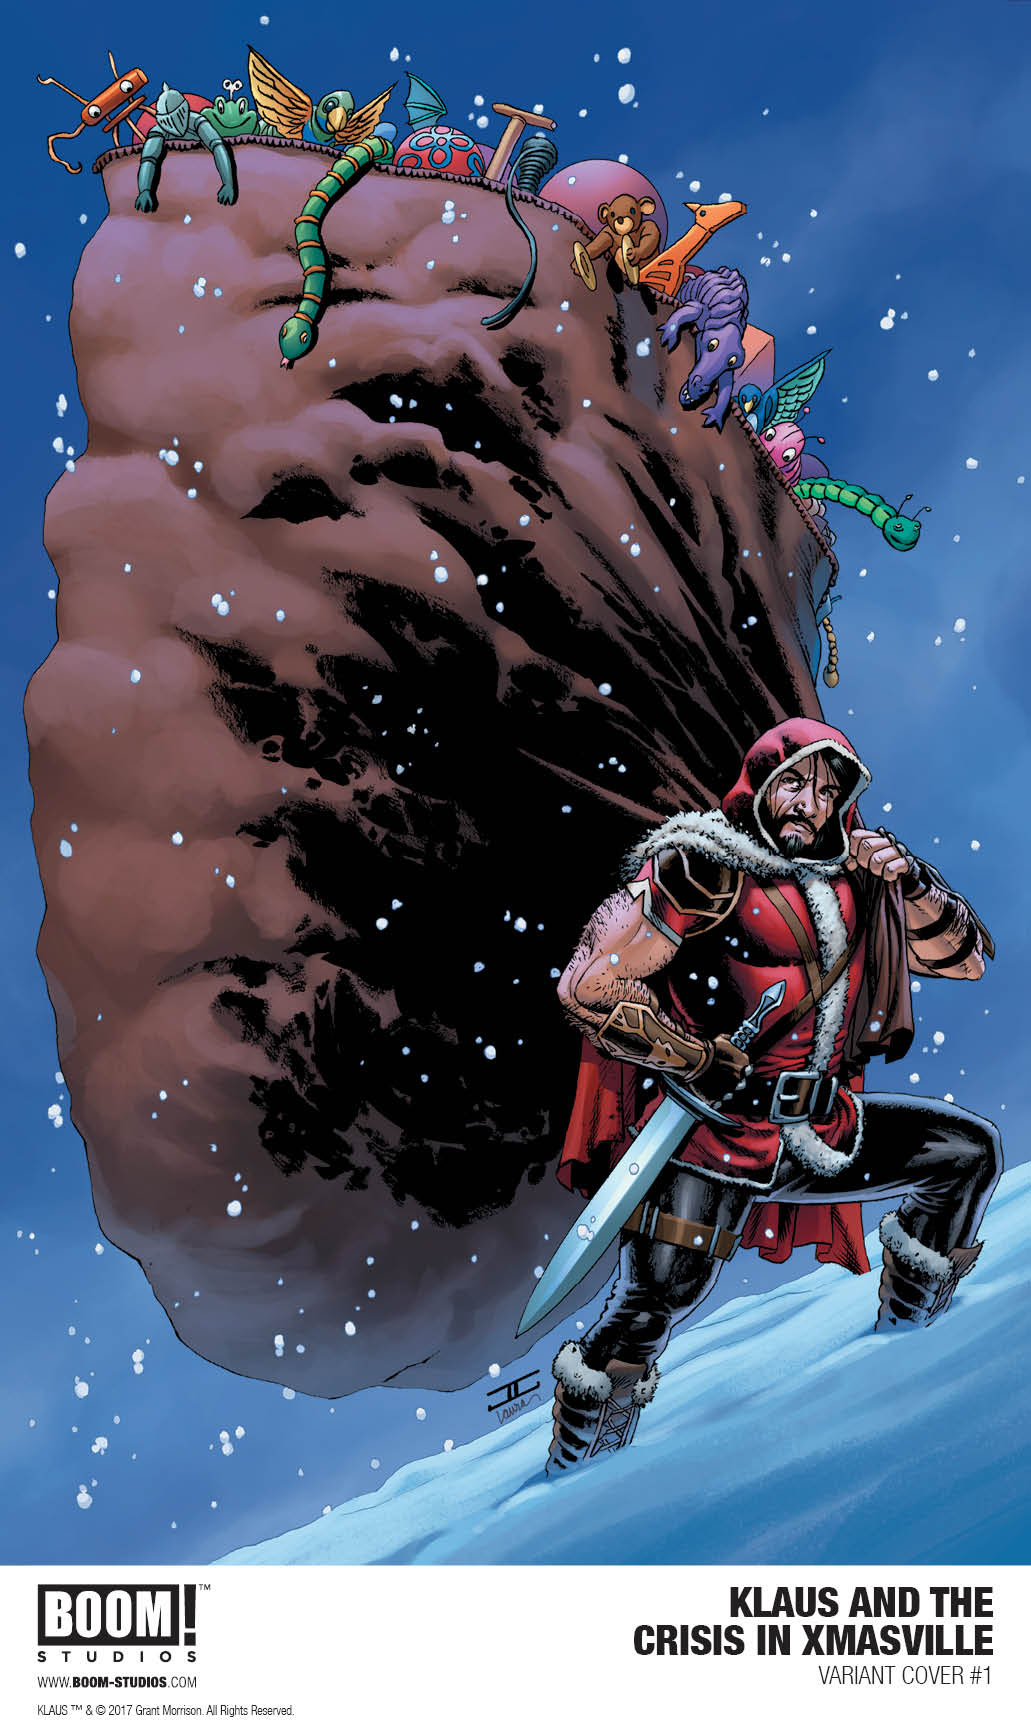 Frank Quitely and John Cassaday join Grant Morrison and Dan Mora's 'Klaus and the Crisis in Xmasville'